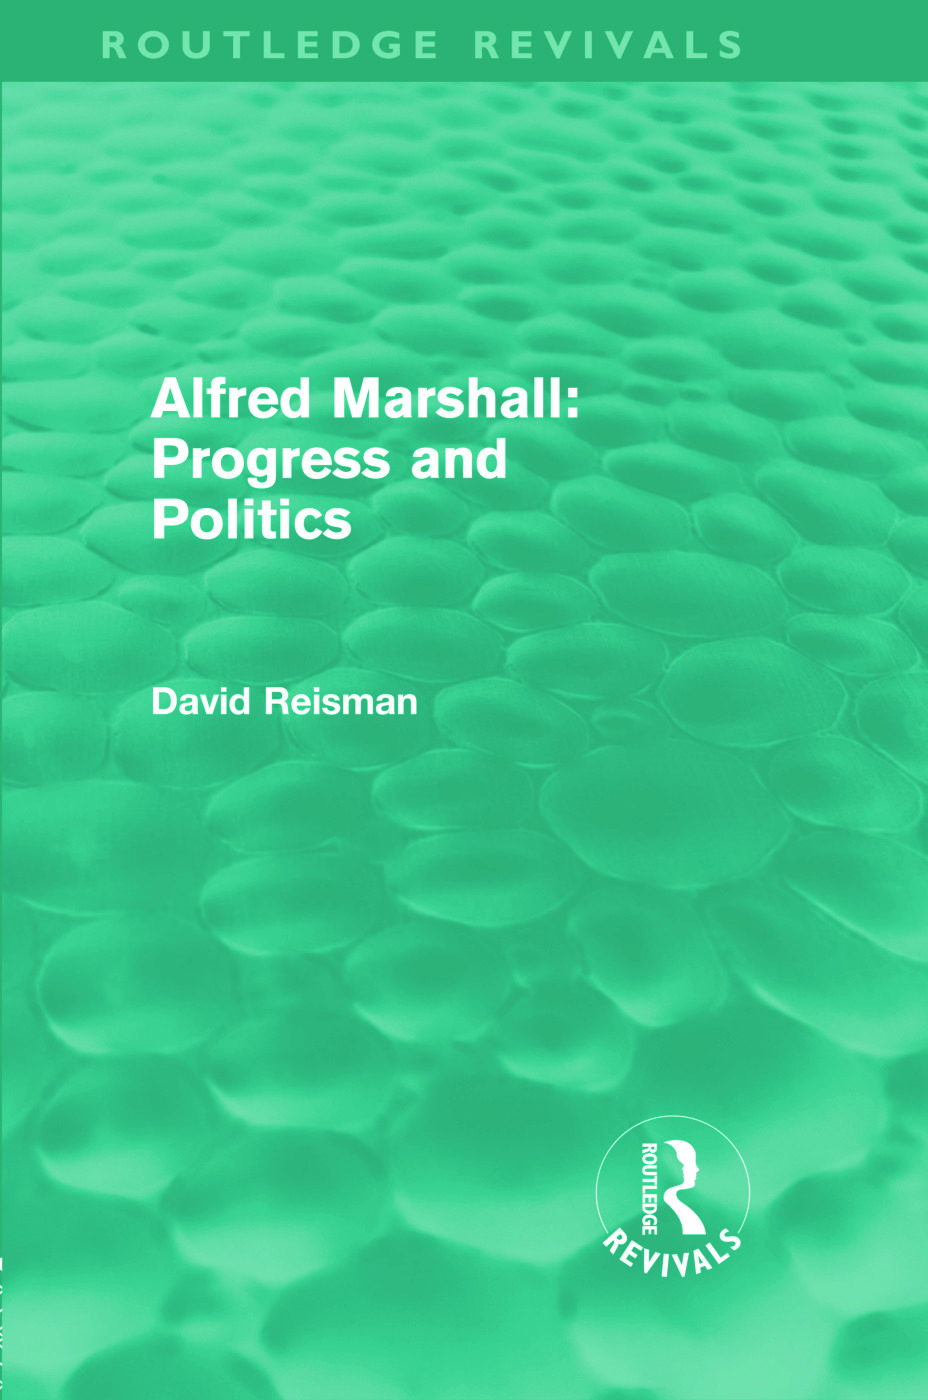 Alfred Marshall: Progress and Politics (Routledge Revivals) (Hardback) book cover